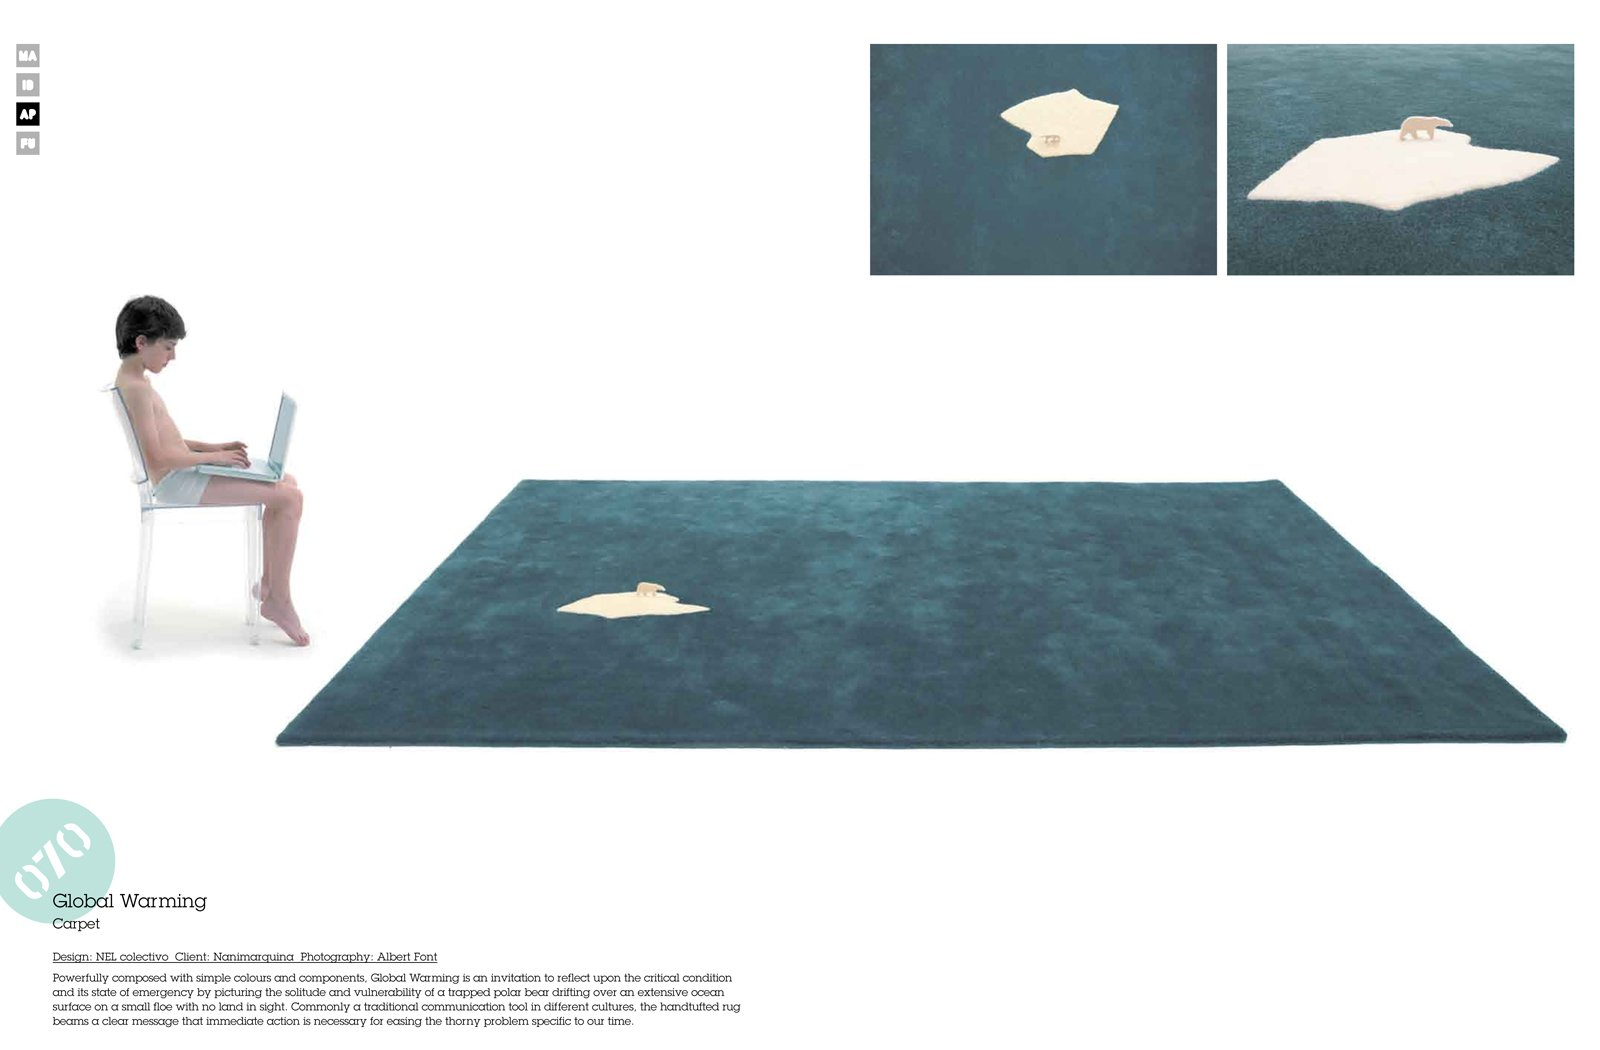 NEL colectivo's Global Warming carpet Nanimarquina is simple yet stunning. It's singular iceberg among a see of blue also strikes a strong sustainability cord.  Love Earth: Eco Ideas and Designs by Miyoko Ohtake